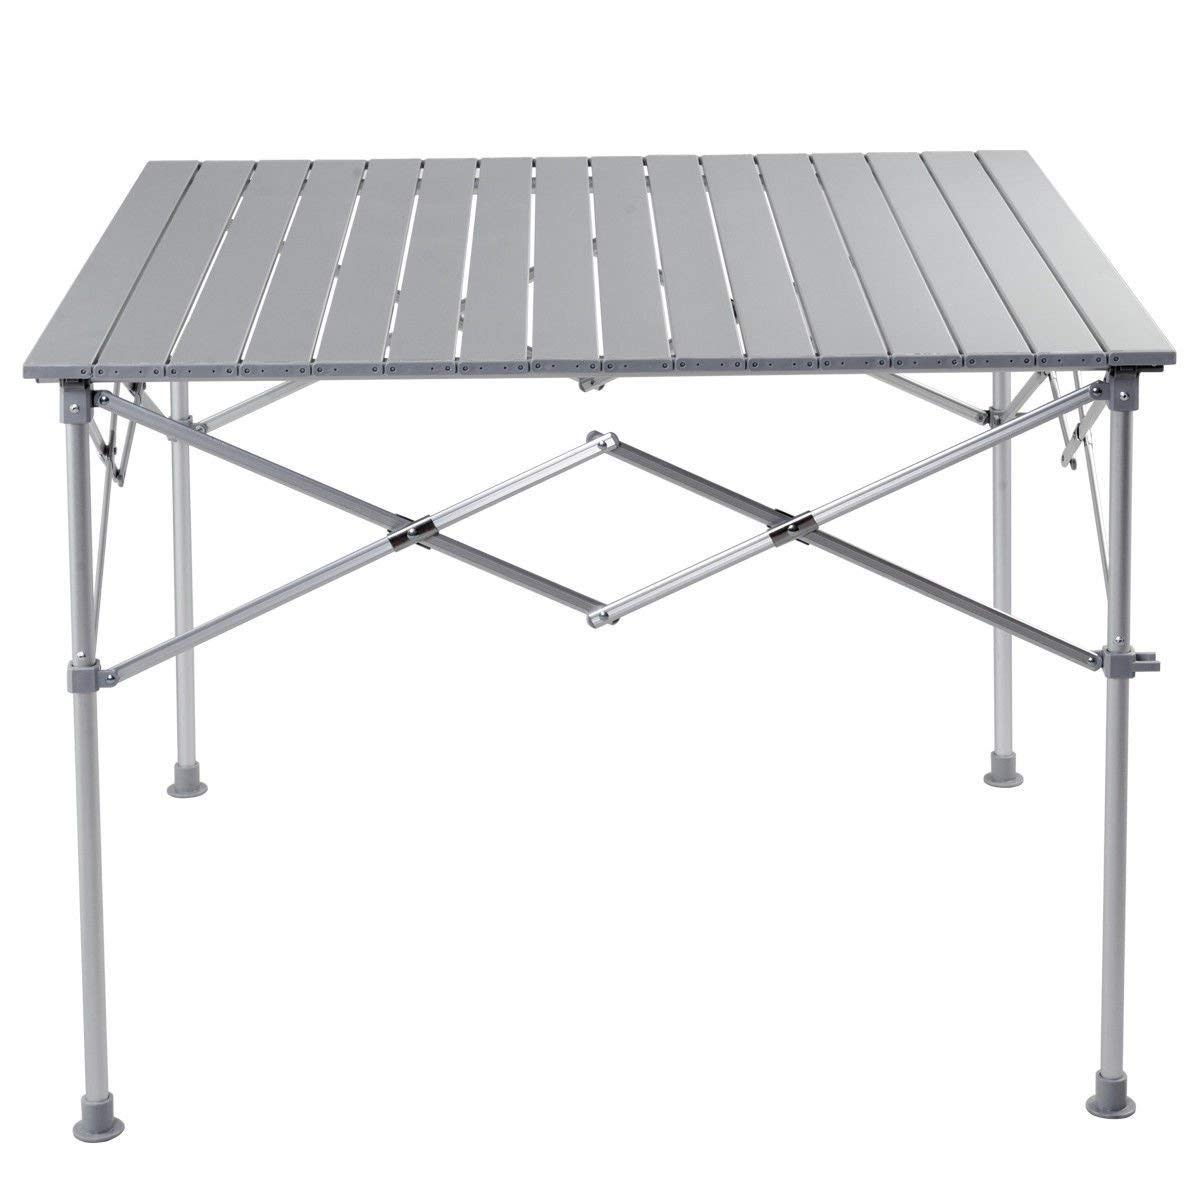 Cheap Portable Folding Table Walmart Find Portable Folding